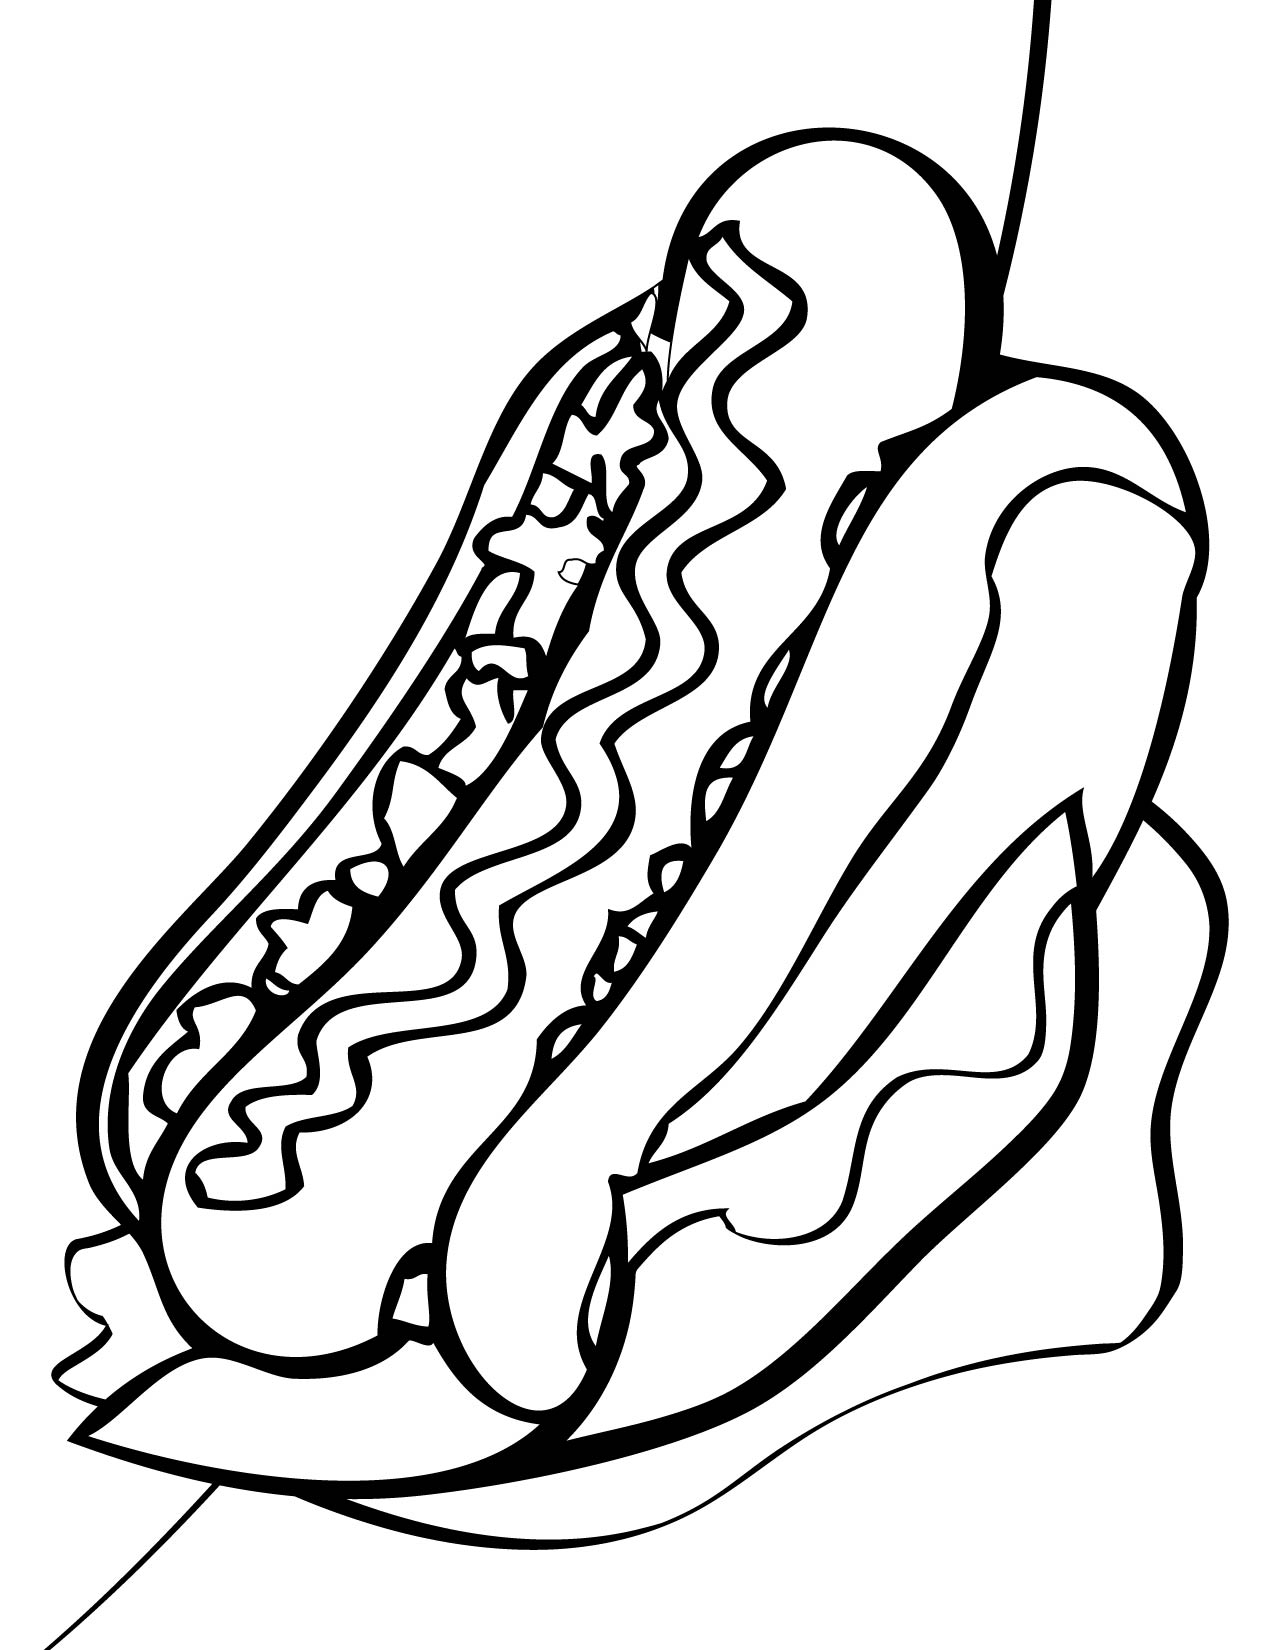 1275x1650 Hot Dog Coloring Pages